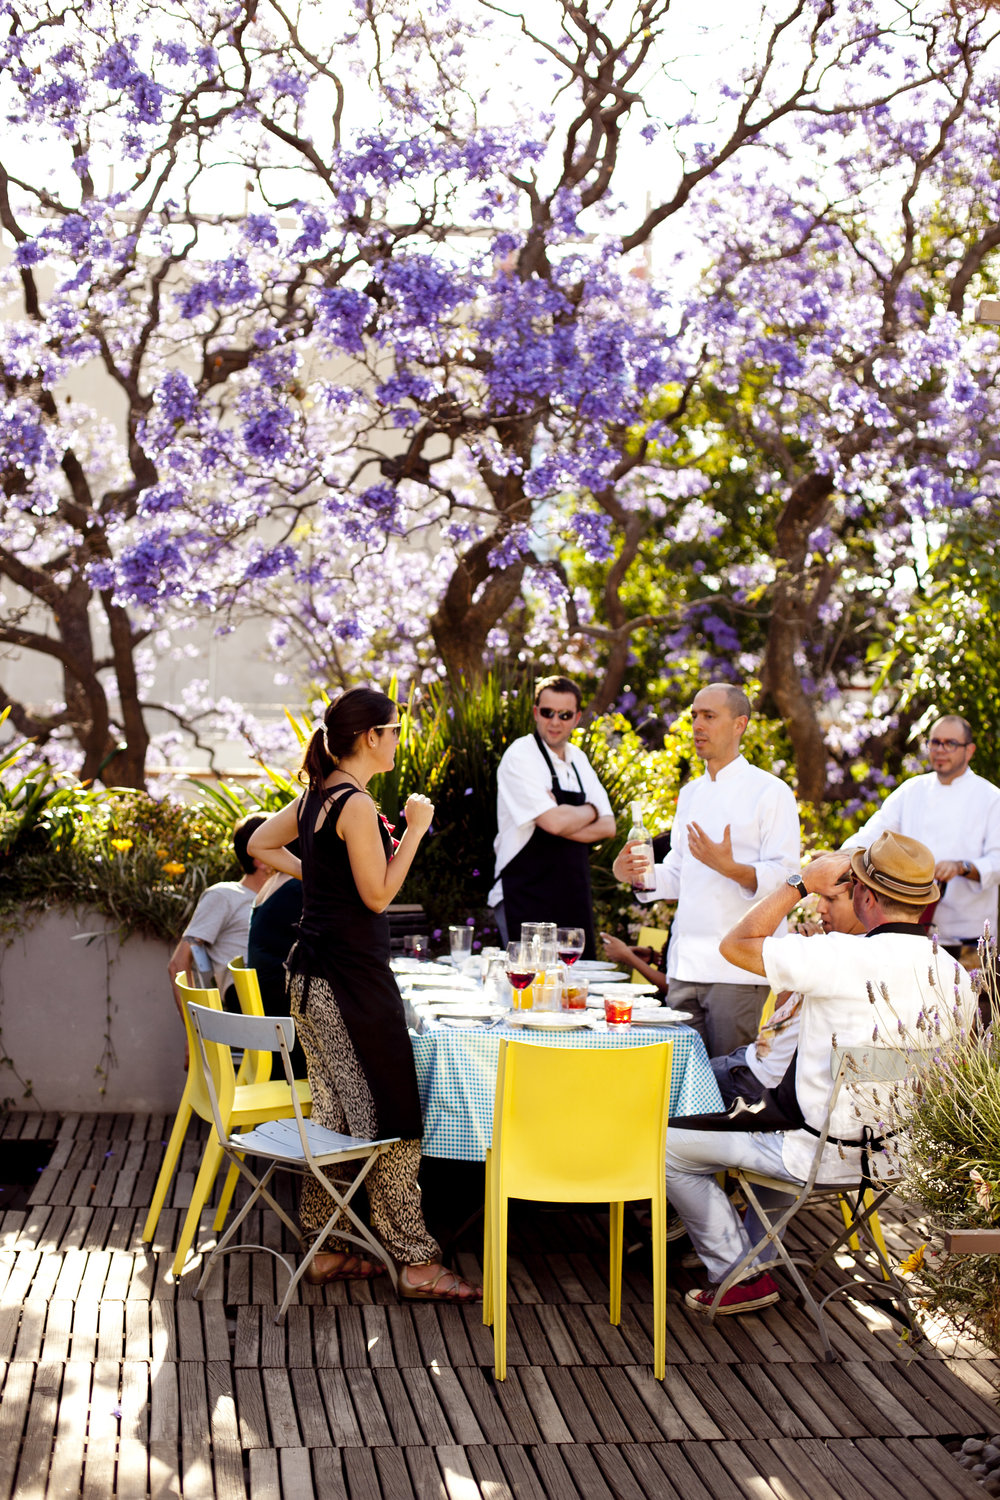 Copy of group of people eating lunch under a jacaranda tree